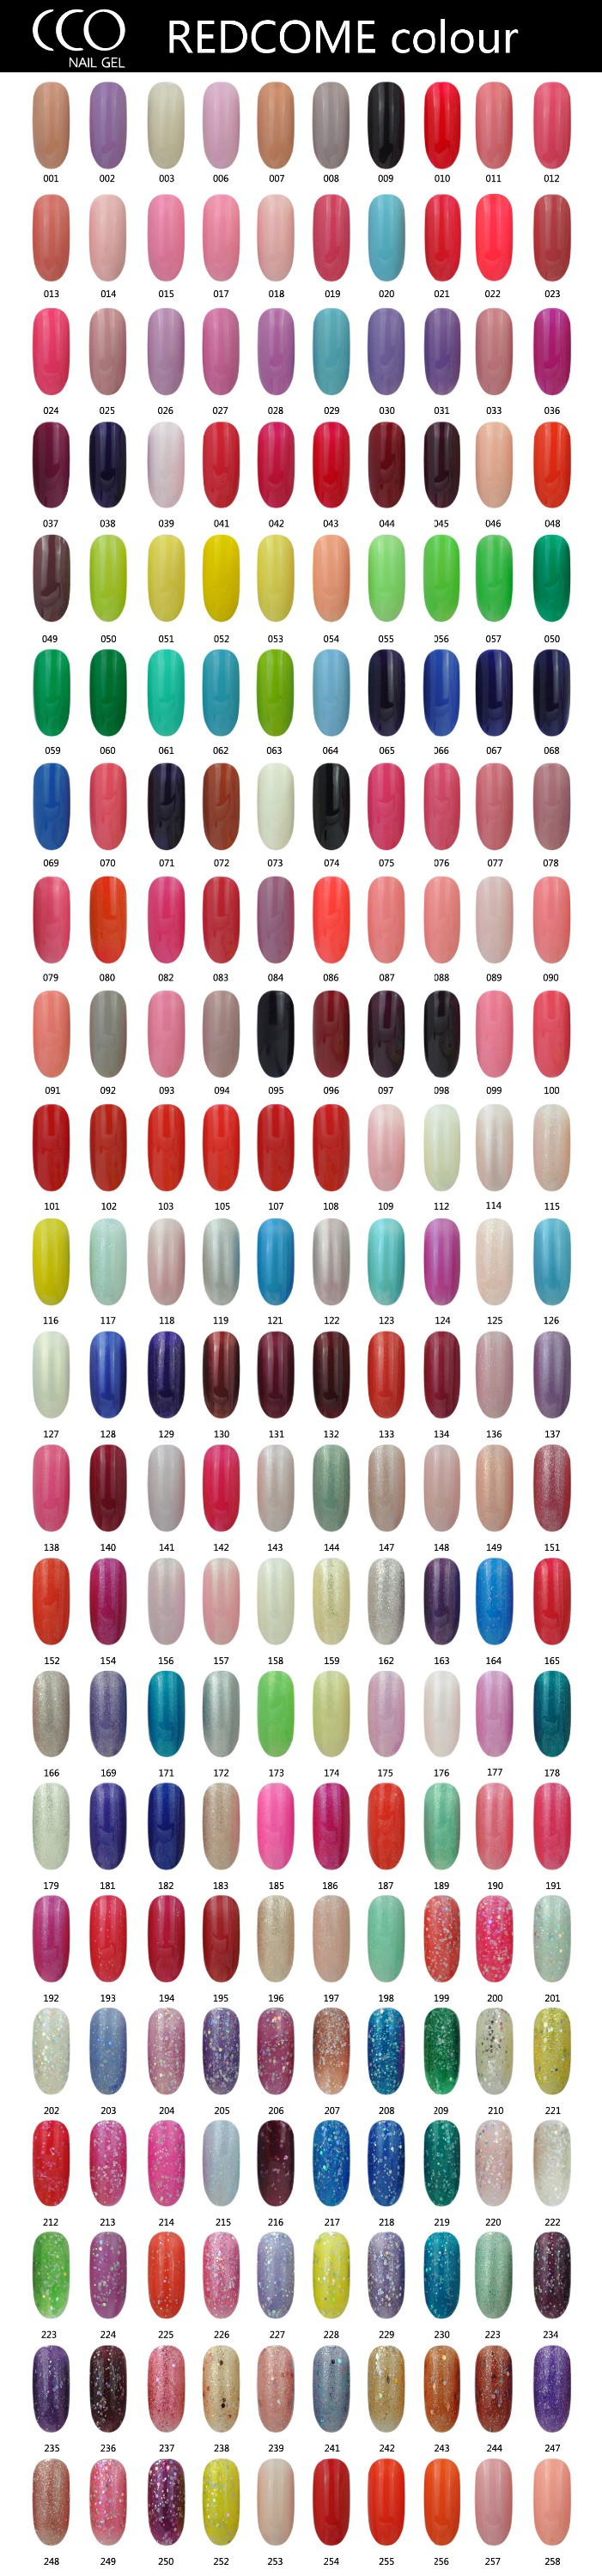 Cco redcome gel polish 383 colors soak off uv led cheap wholesale cco redcome gel polish 383 colors soak off uv led cheap wholesale nail polish geenschuldenfo Image collections